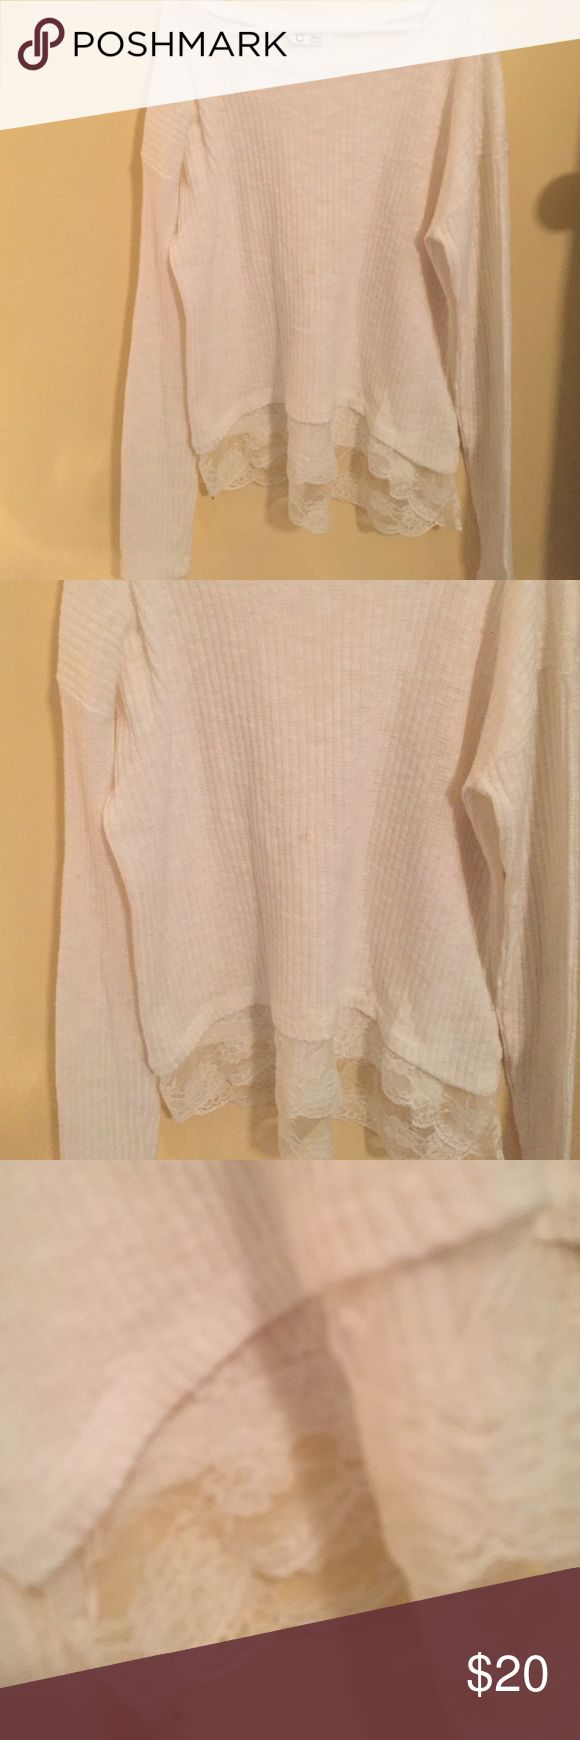 White Lace Trimmed Sweater Open to trades for naked 3 pallet, Brandy Melville cardigans, and combat boots Other